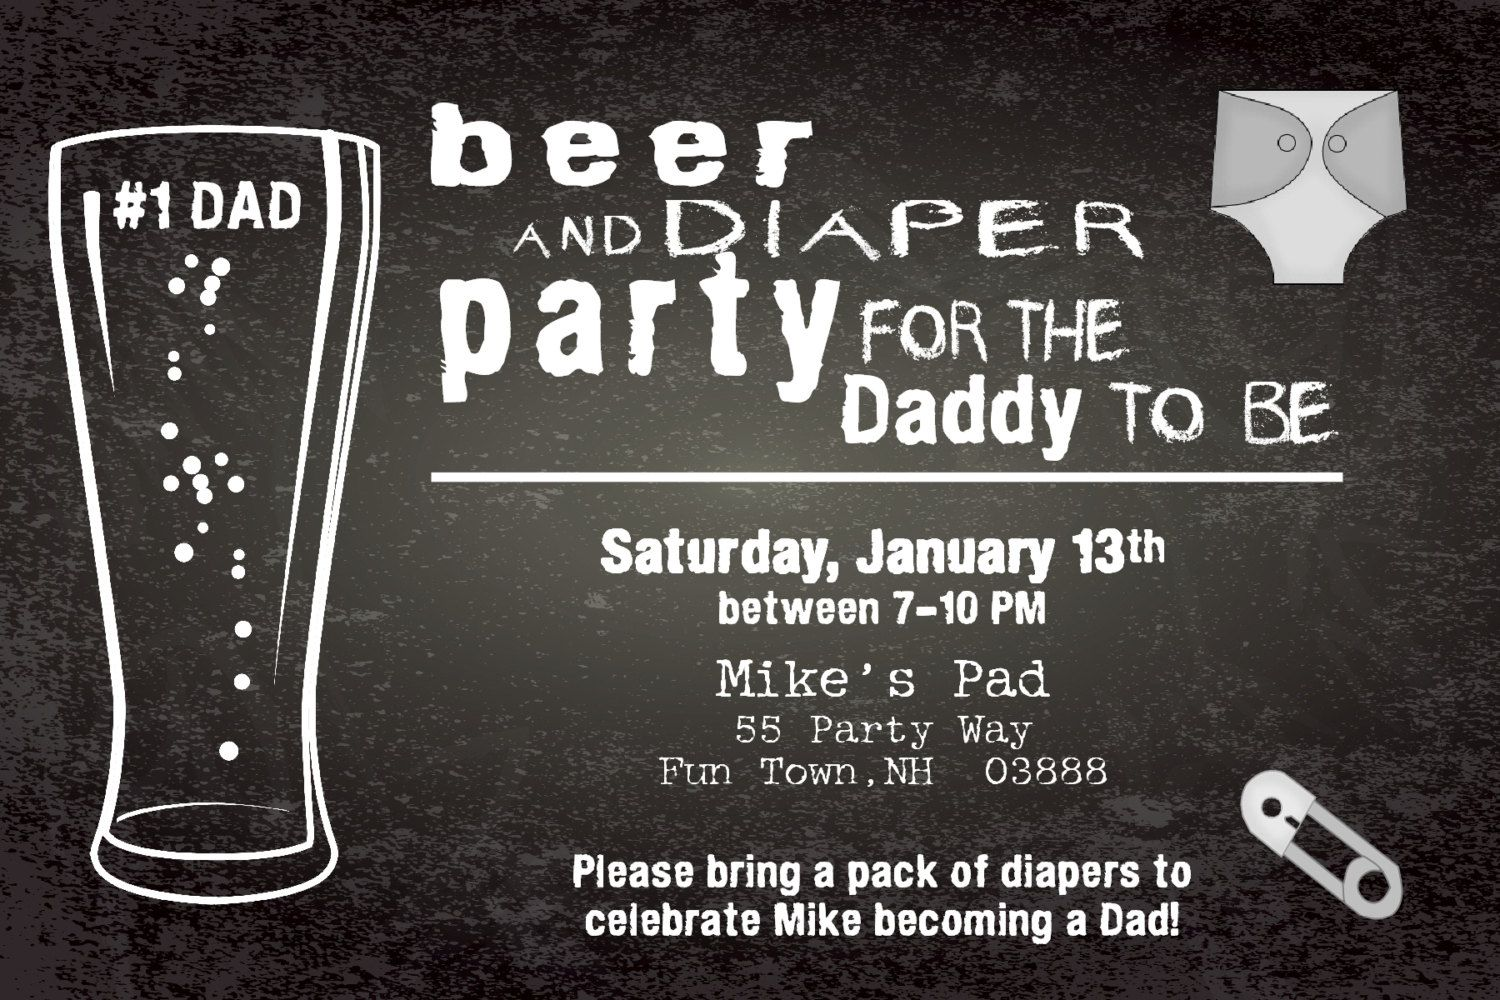 Beer and diapers baby shower invitation diapers and beer baby beer and diapers baby shower invitation diapers and beer baby shower invite mans baby filmwisefo Images